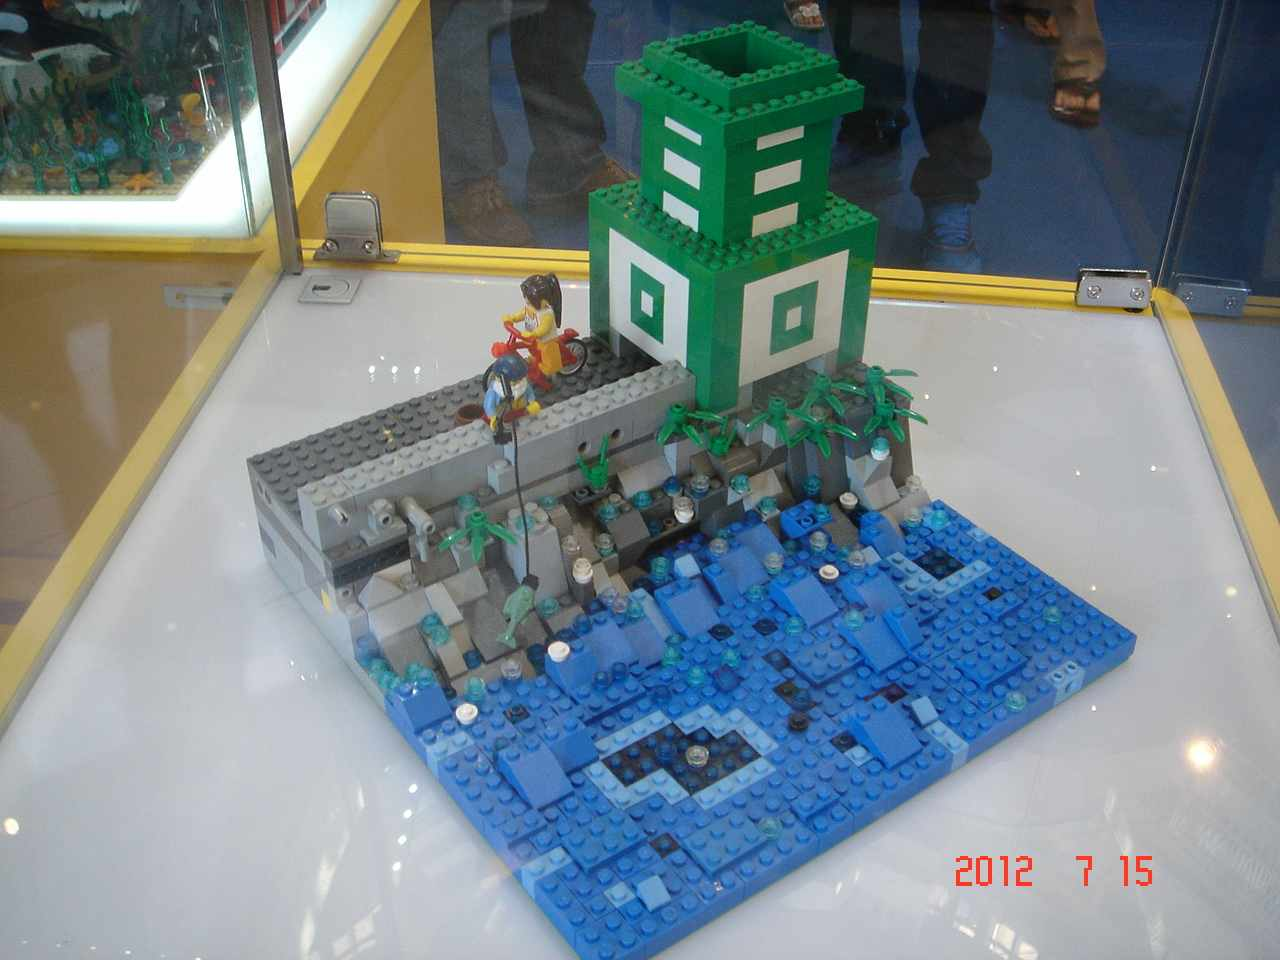 lego_show_ucc-office_0715007.jpg